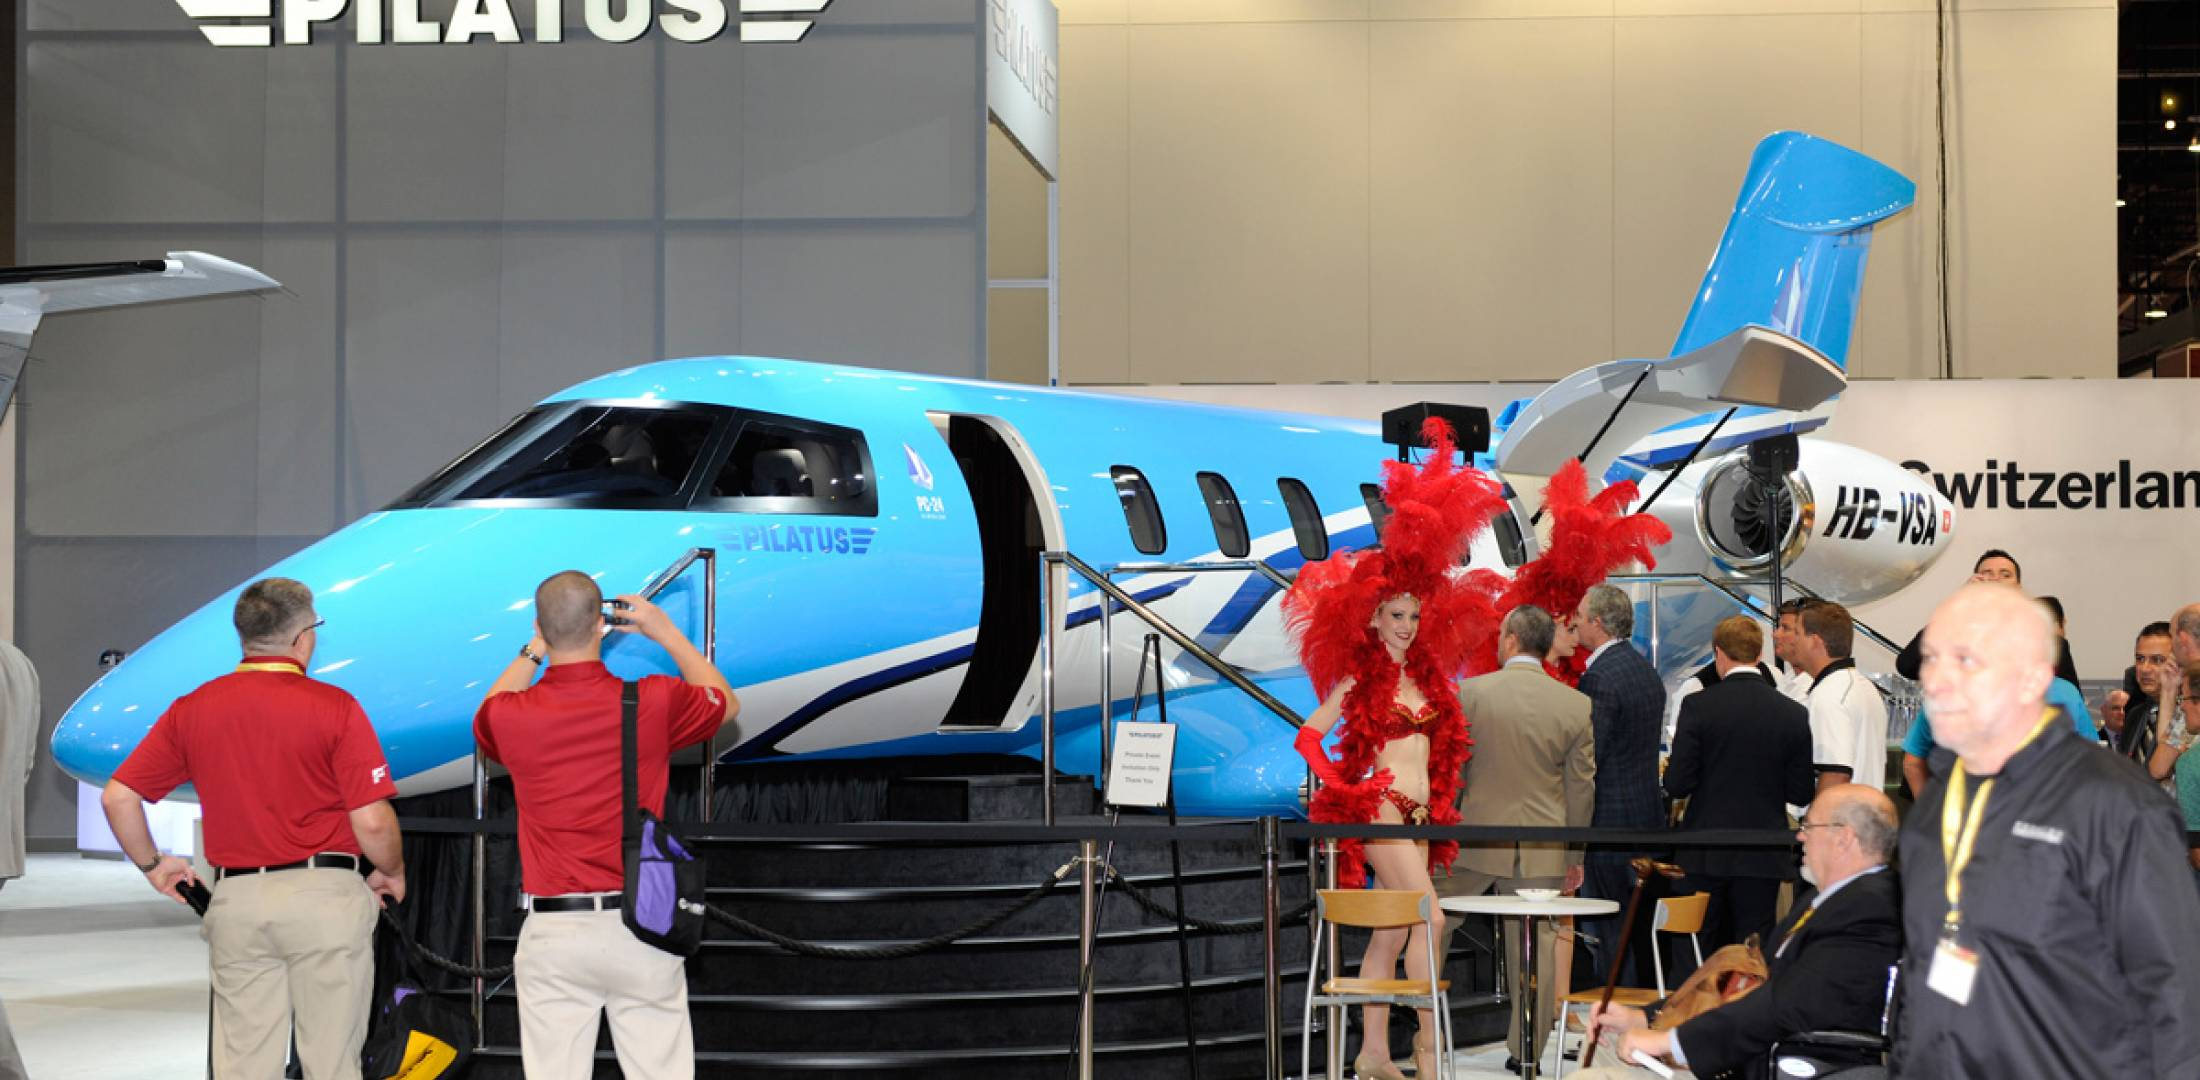 Pilatus Business Aircraft is displaying a mock-up of its twinjet PC-24, which combines light-jet operating economics with super-midsize jet capabilities.